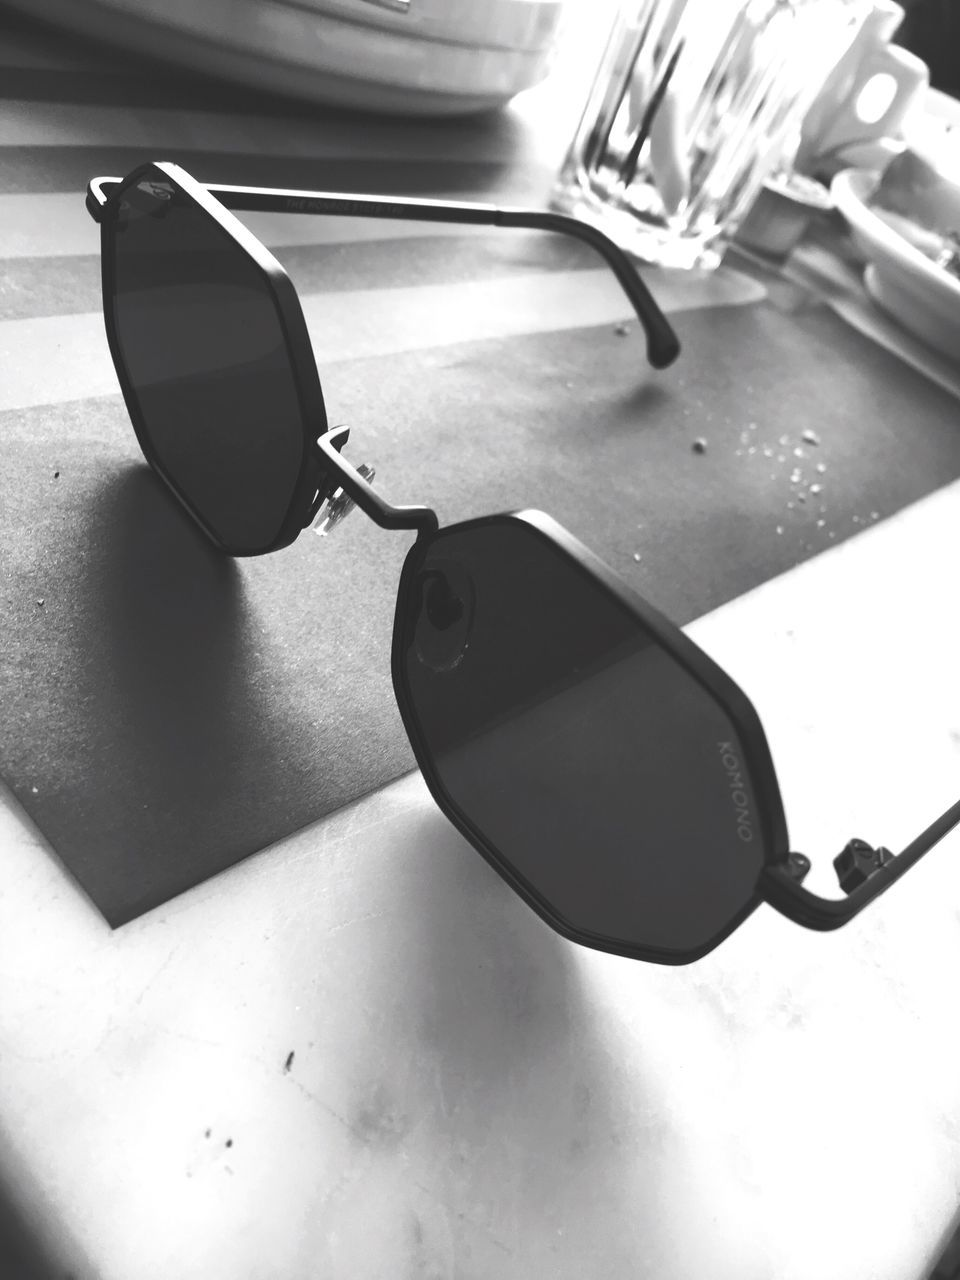 sunglasses, table, still life, no people, indoors, sunlight, close-up, day, eyeglasses